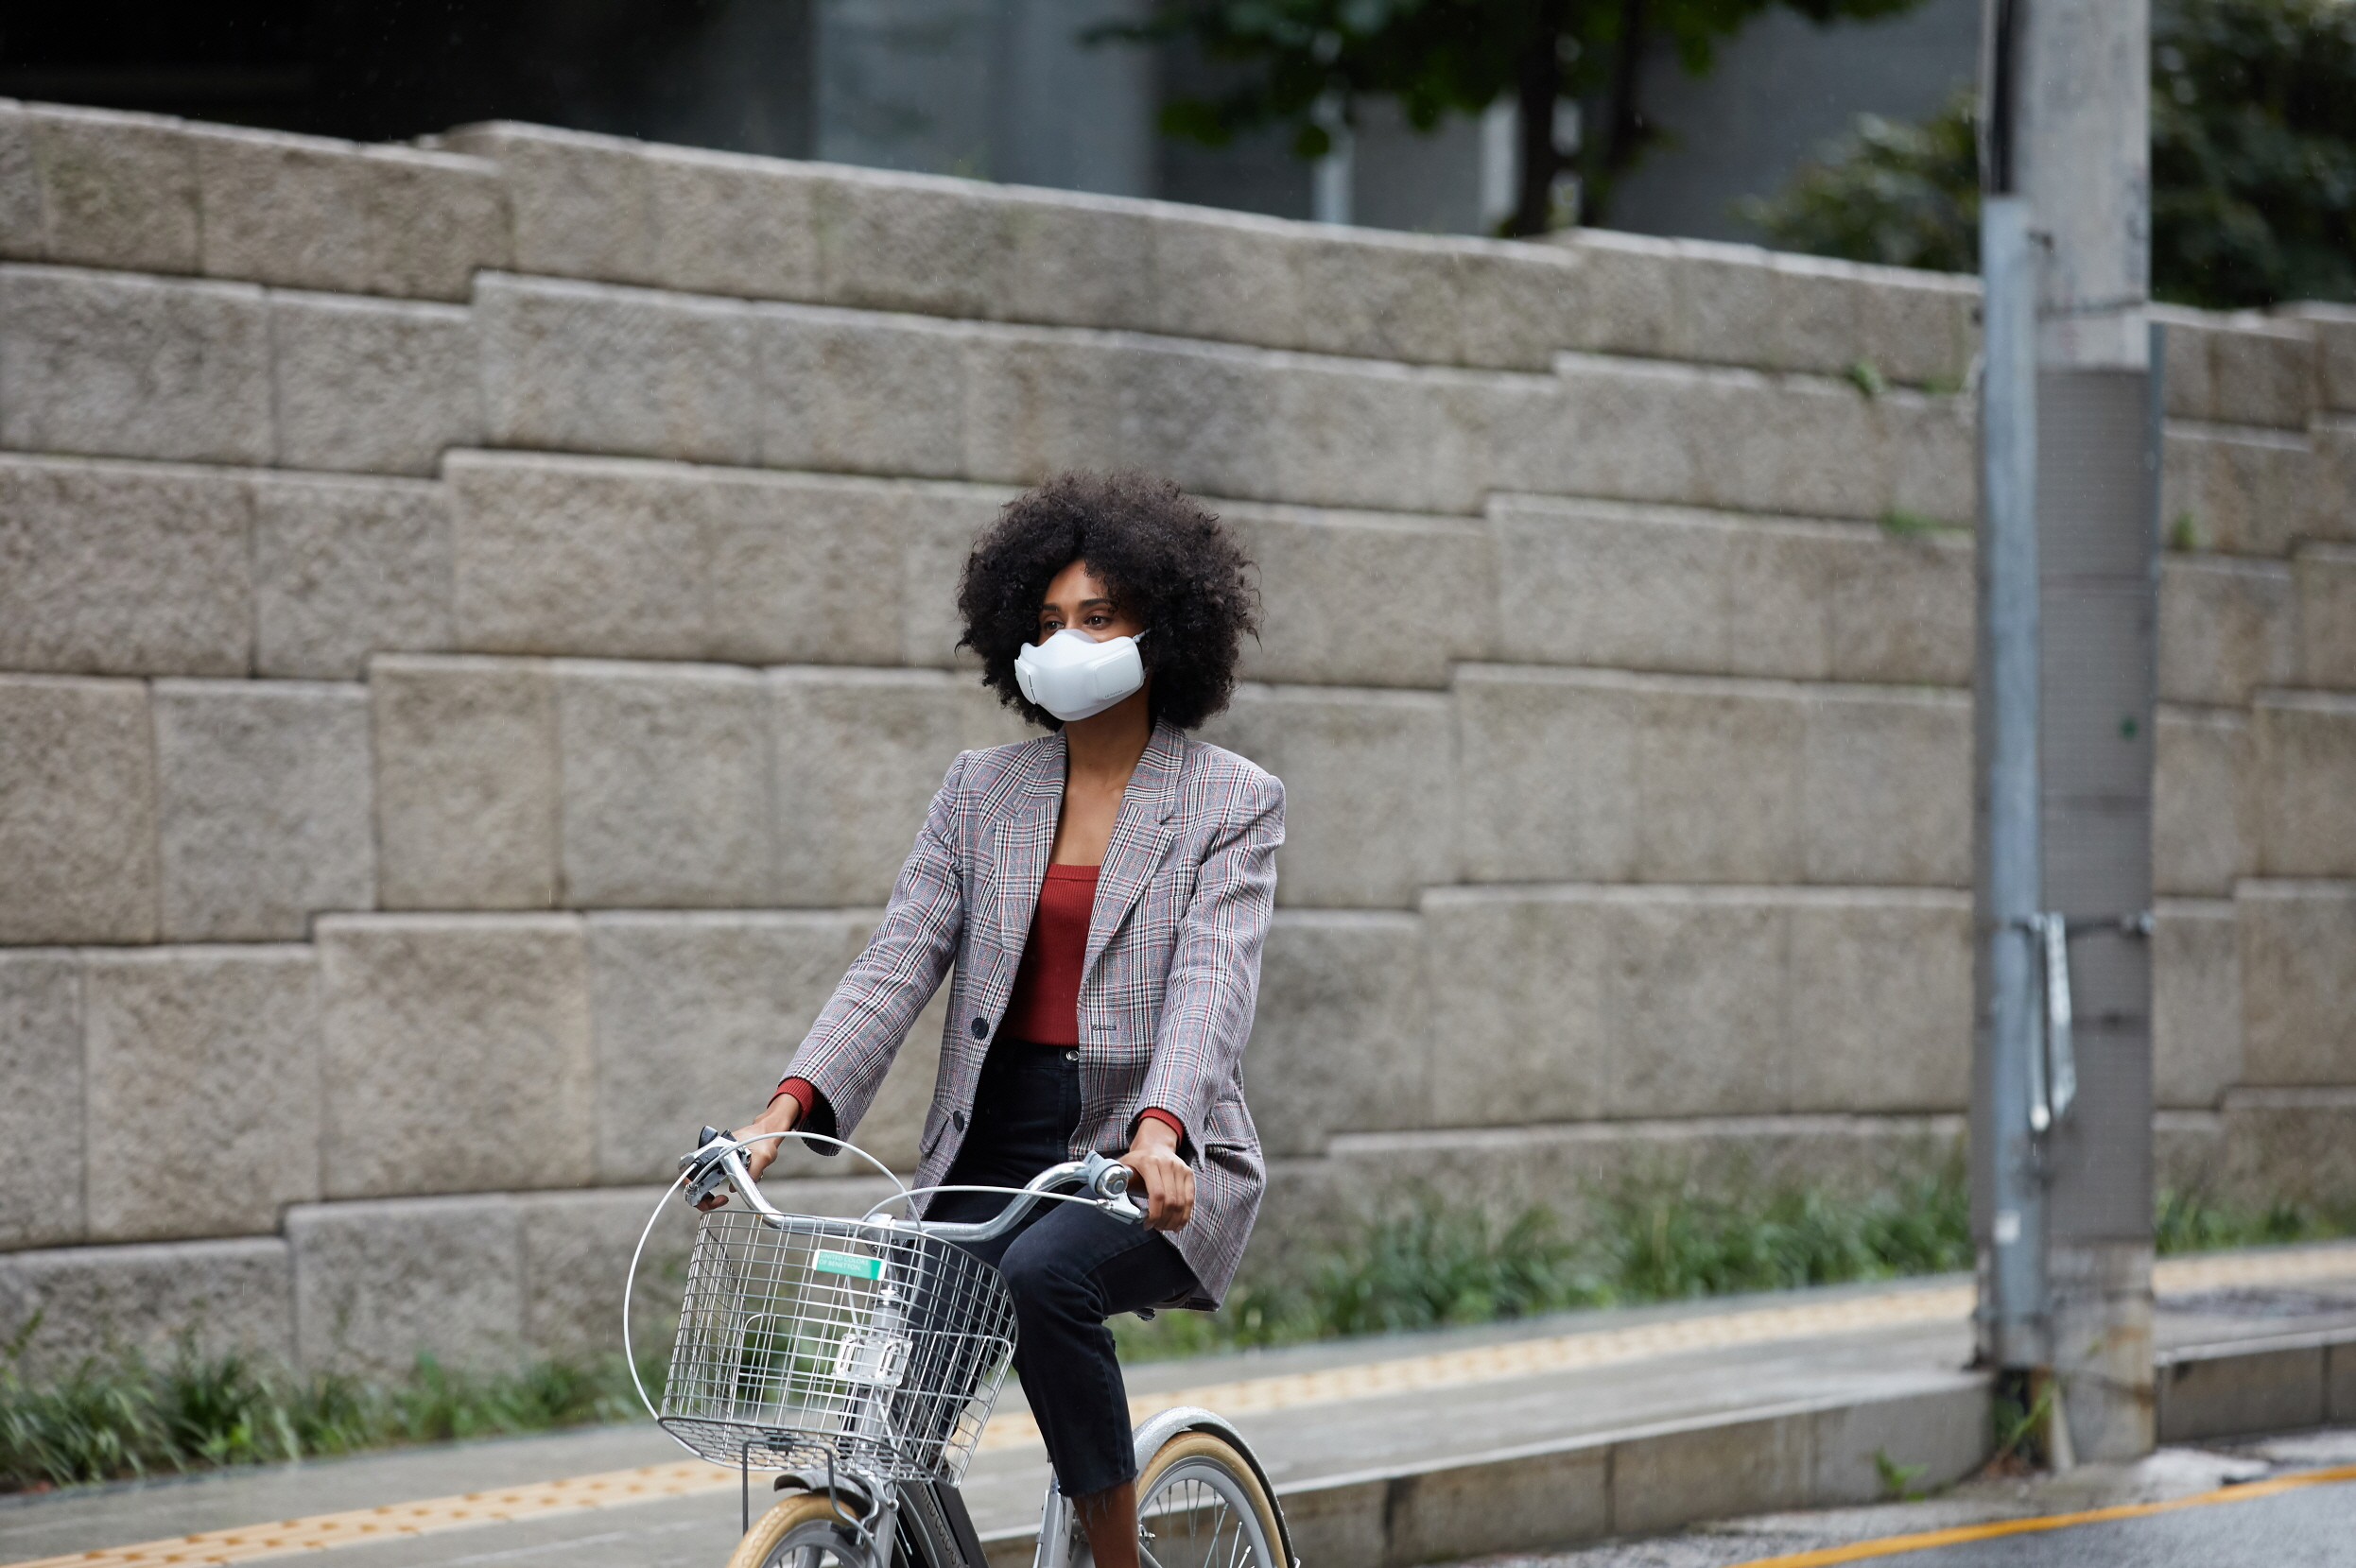 A woman on a bicycle wearing LG PuriCare™ wearable Air Purifier